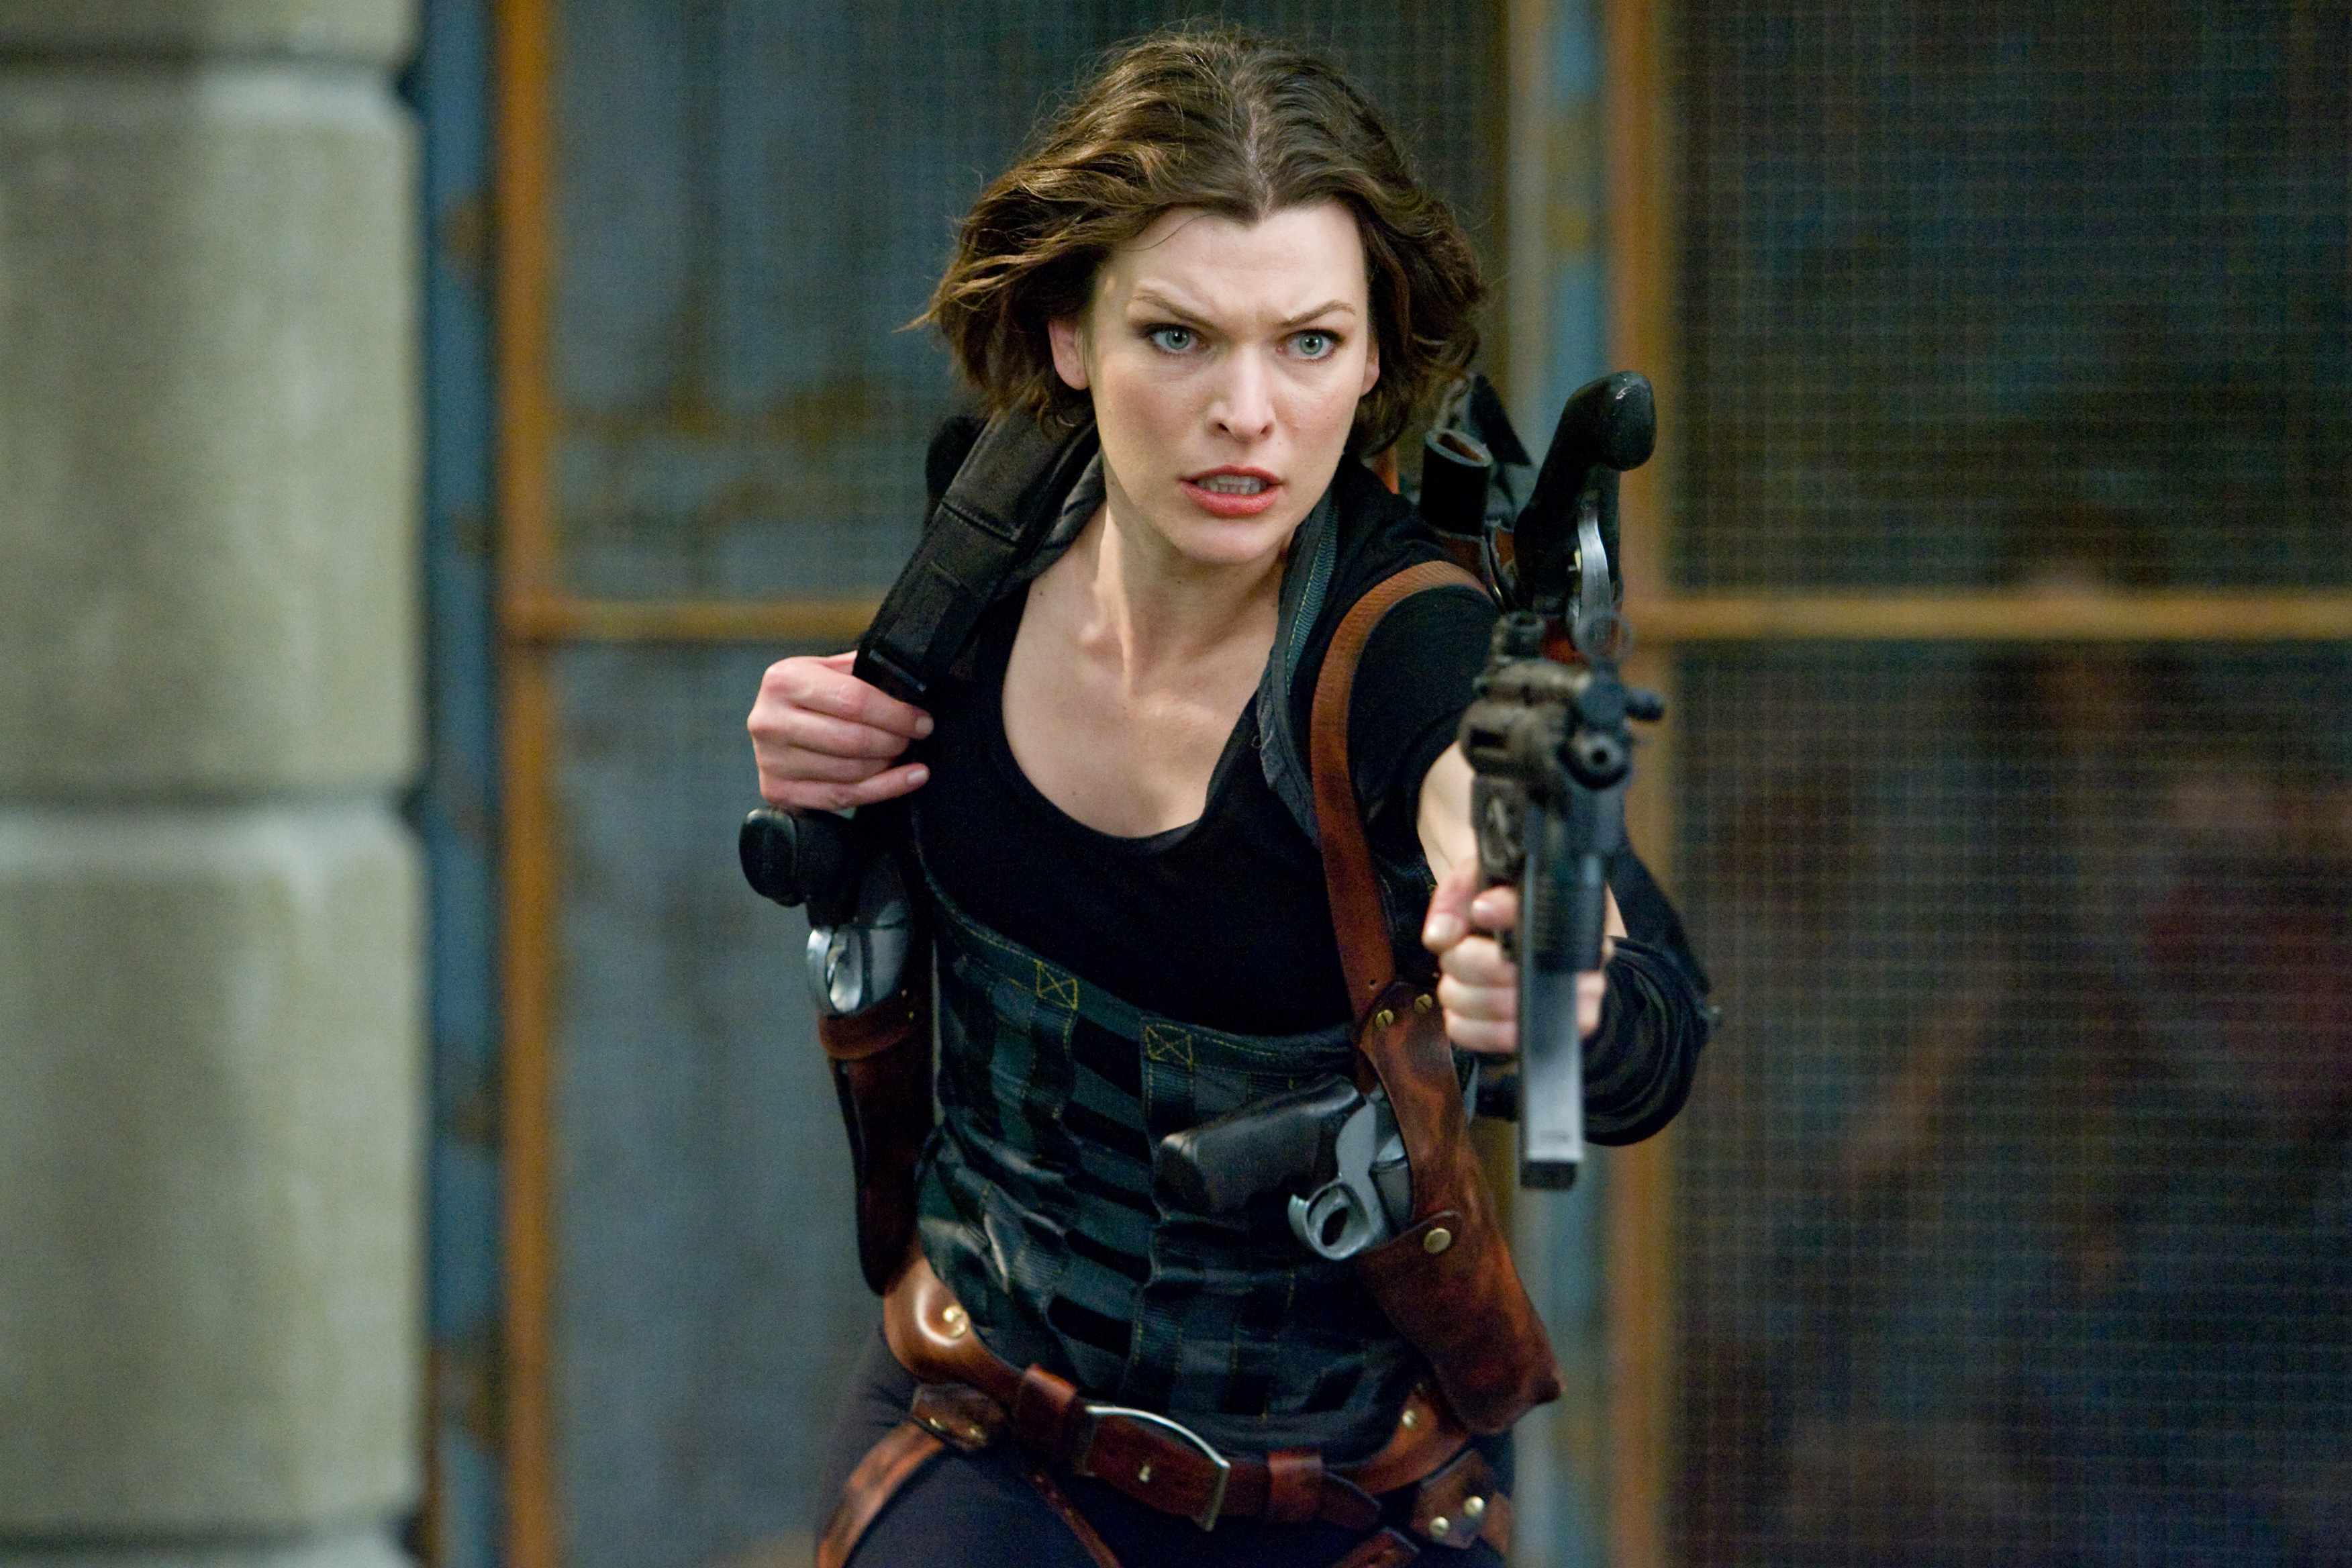 Milla Jovovich in the Resident Evil movies